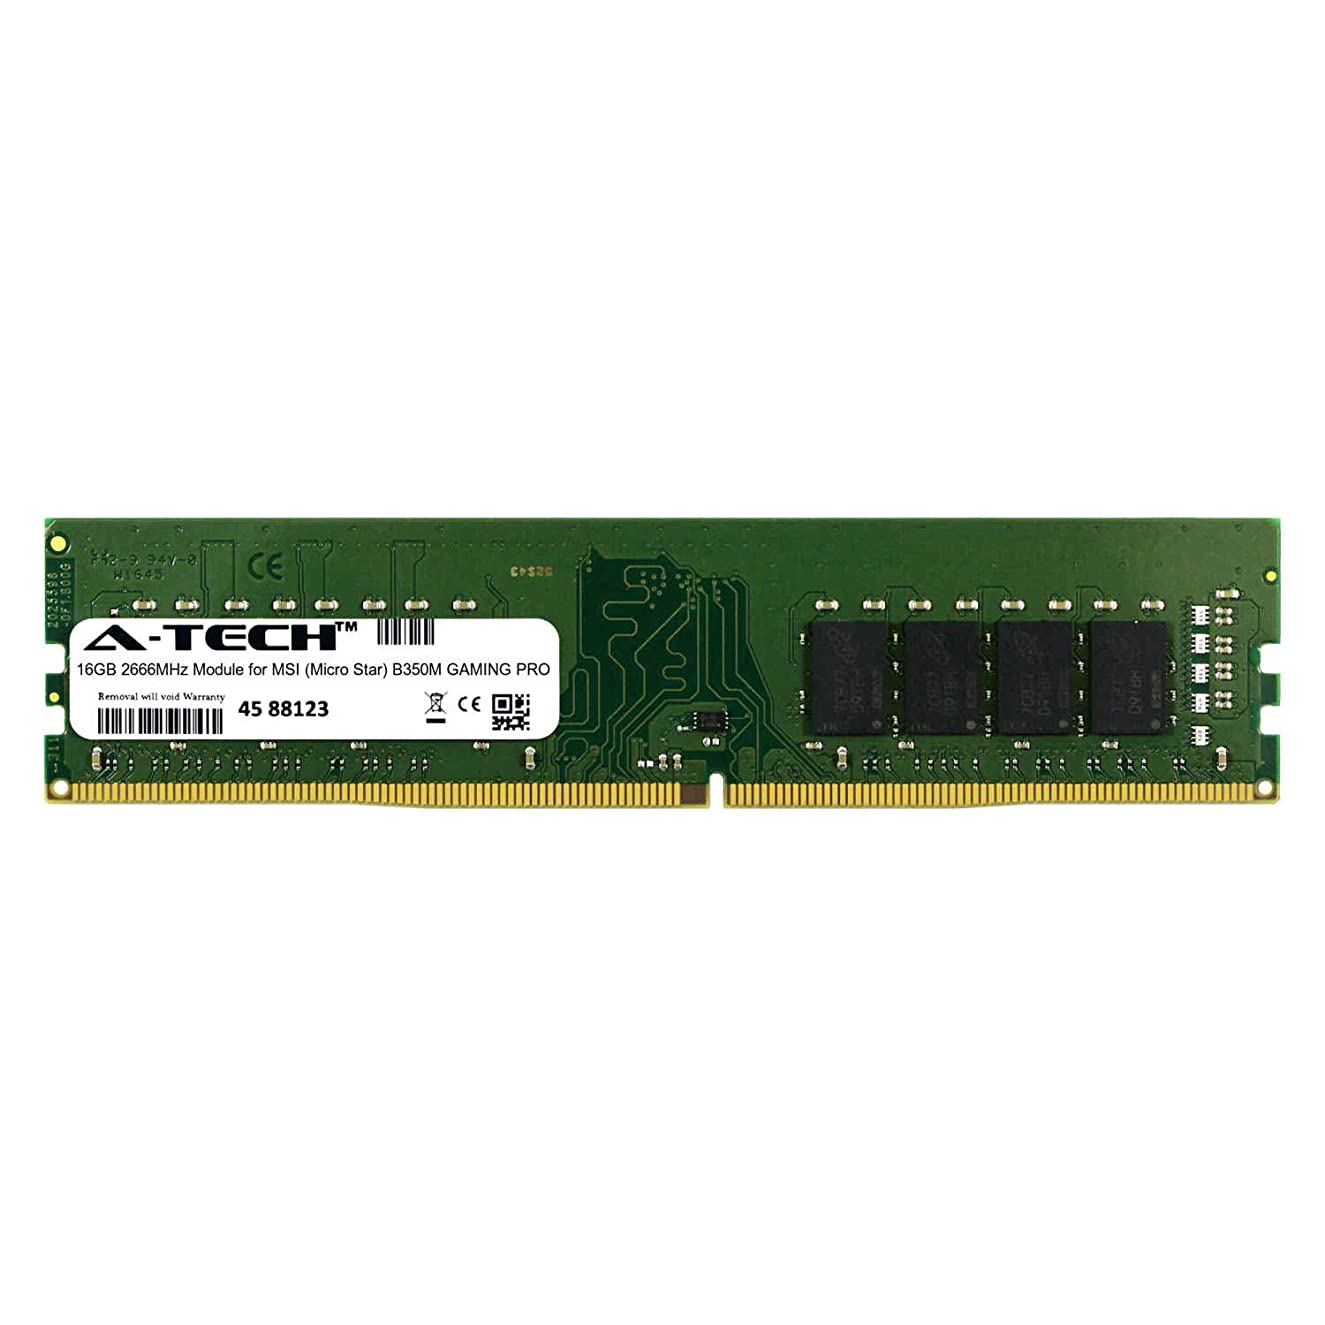 A-Tech 16GB Module for MSI (Micro Star) B350M Gaming PRO Desktop & Workstation Motherboard Compatible DDR4 2666Mhz Memory Ram (ATMS368331A25823X1)